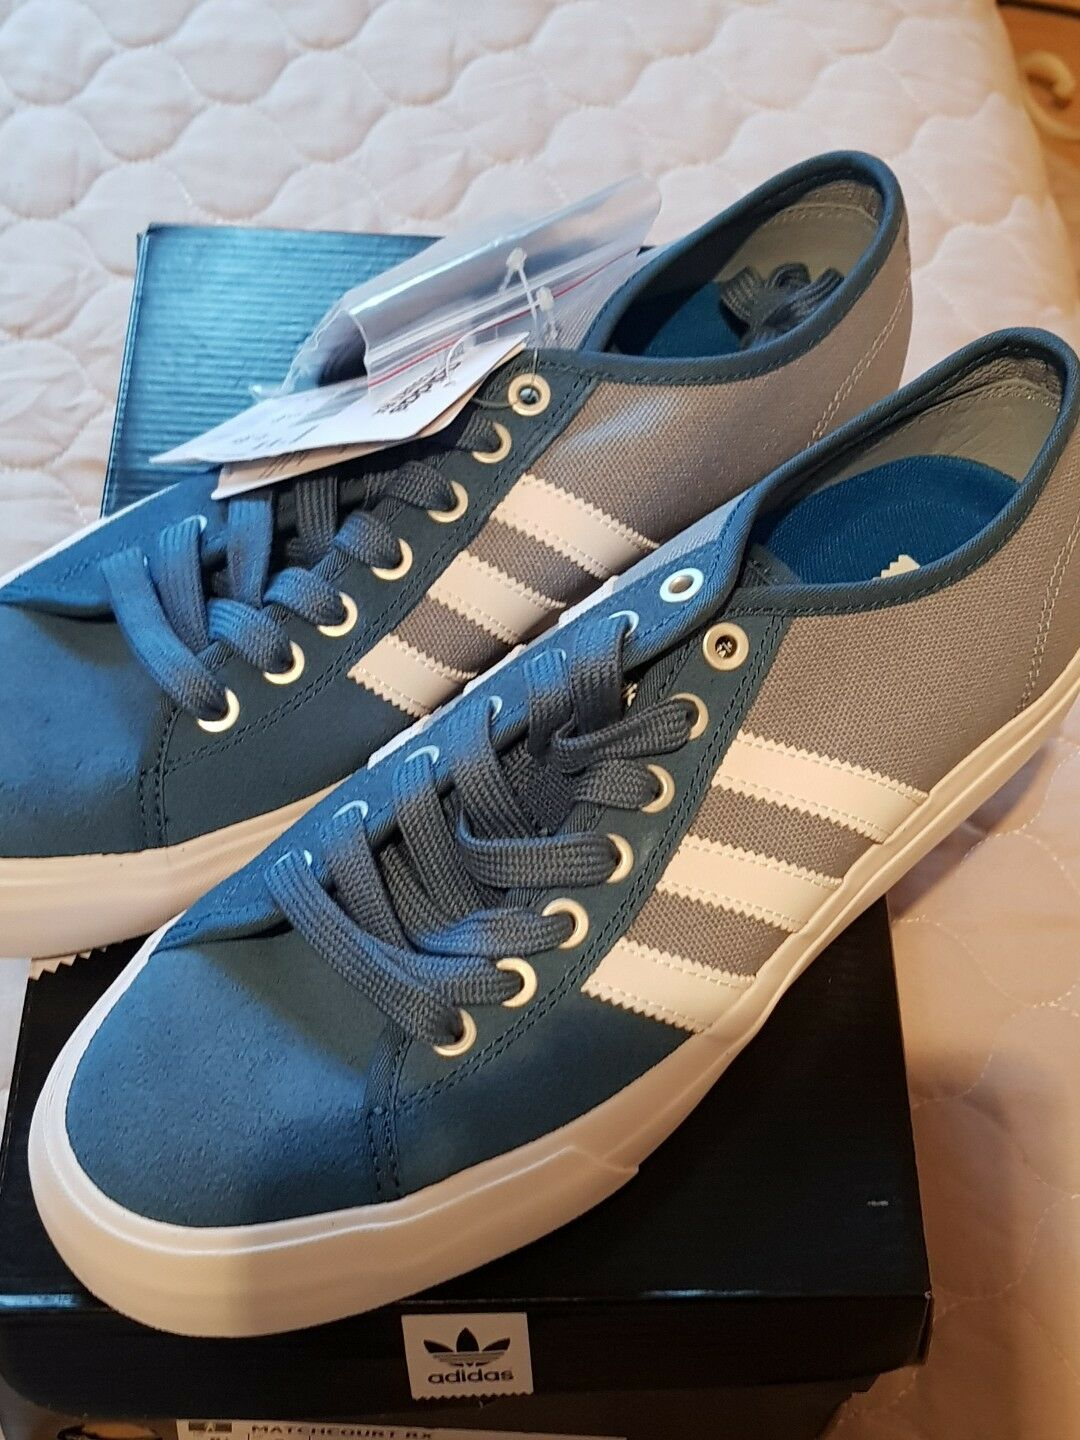 ADIDAS MENS SKATEBOARDING MATCHCOURT RX.TRAINERS.COL.BLUE/WHITE.BNWT.SIZE.UK.8 Special limited time